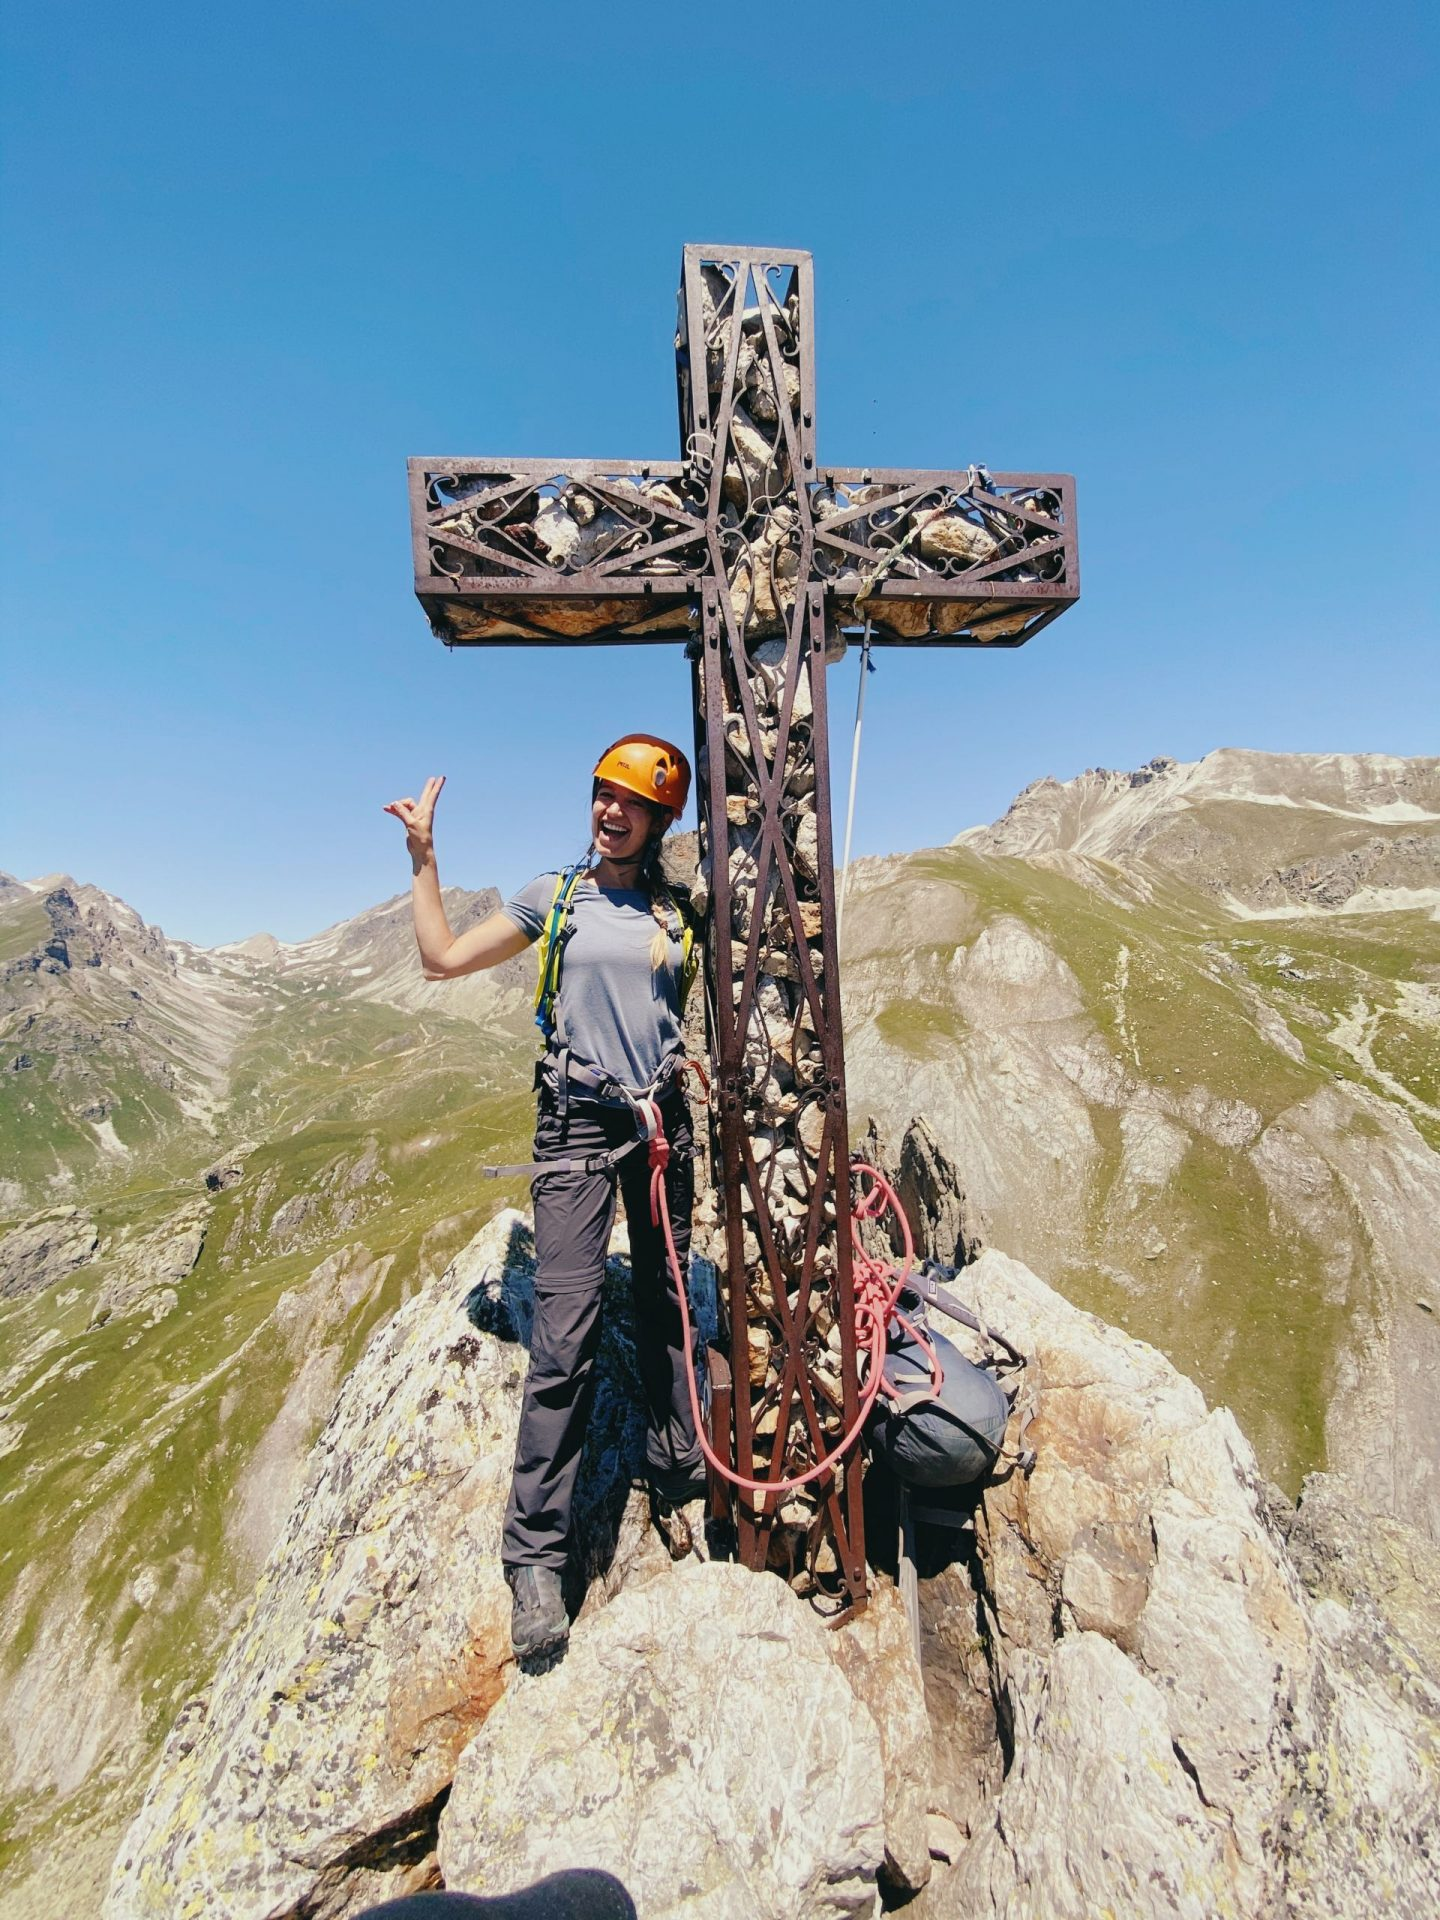 Summit of Rocca Provenzale – Alpinism in Maira Valley, Italy